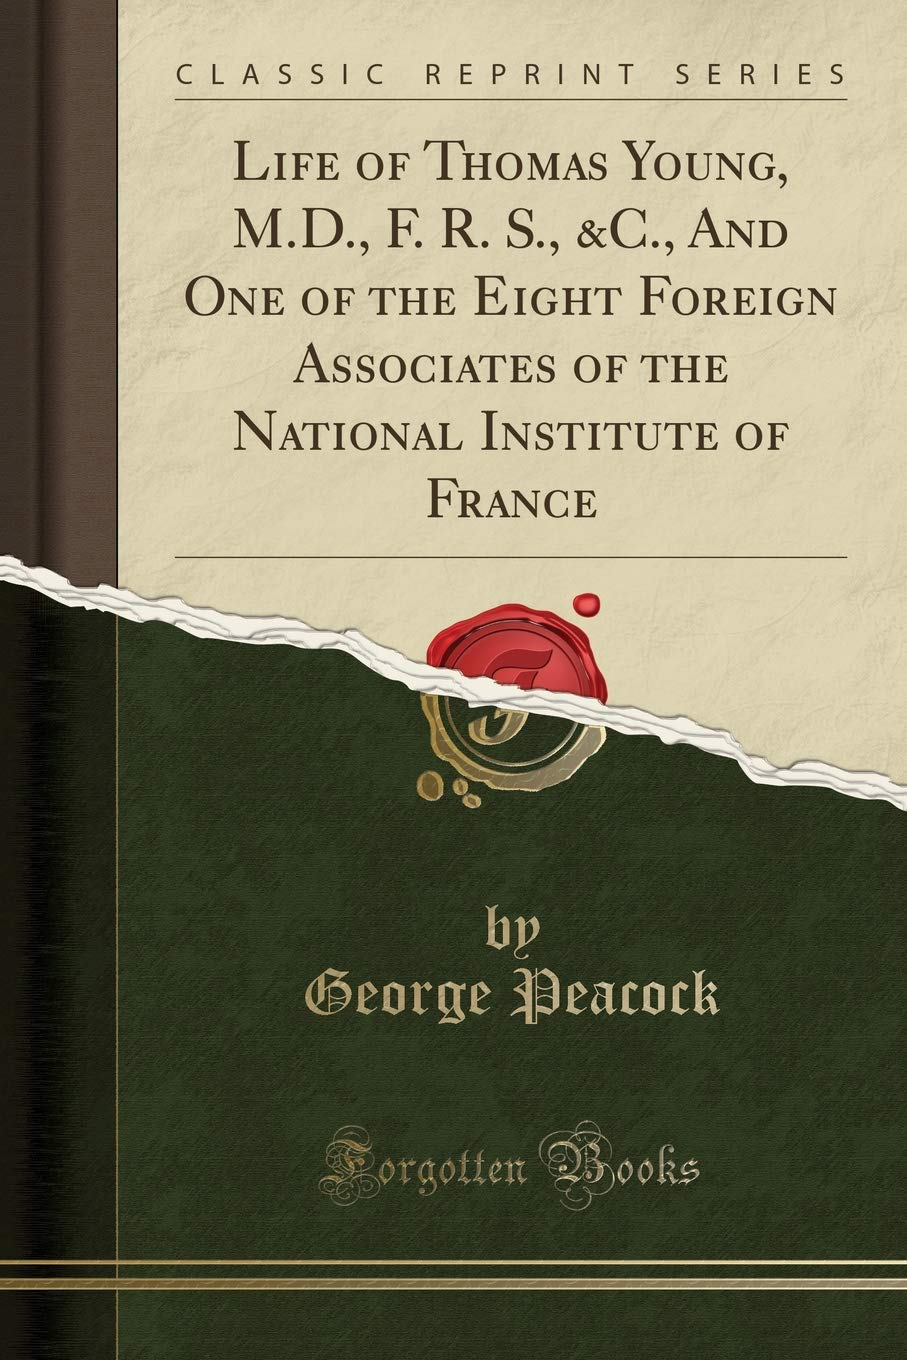 Read Online Life of Thomas Young, M.D., F. R. S., &C., And One of the Eight Foreign Associates of the National Institute of France (Classic Reprint) ebook